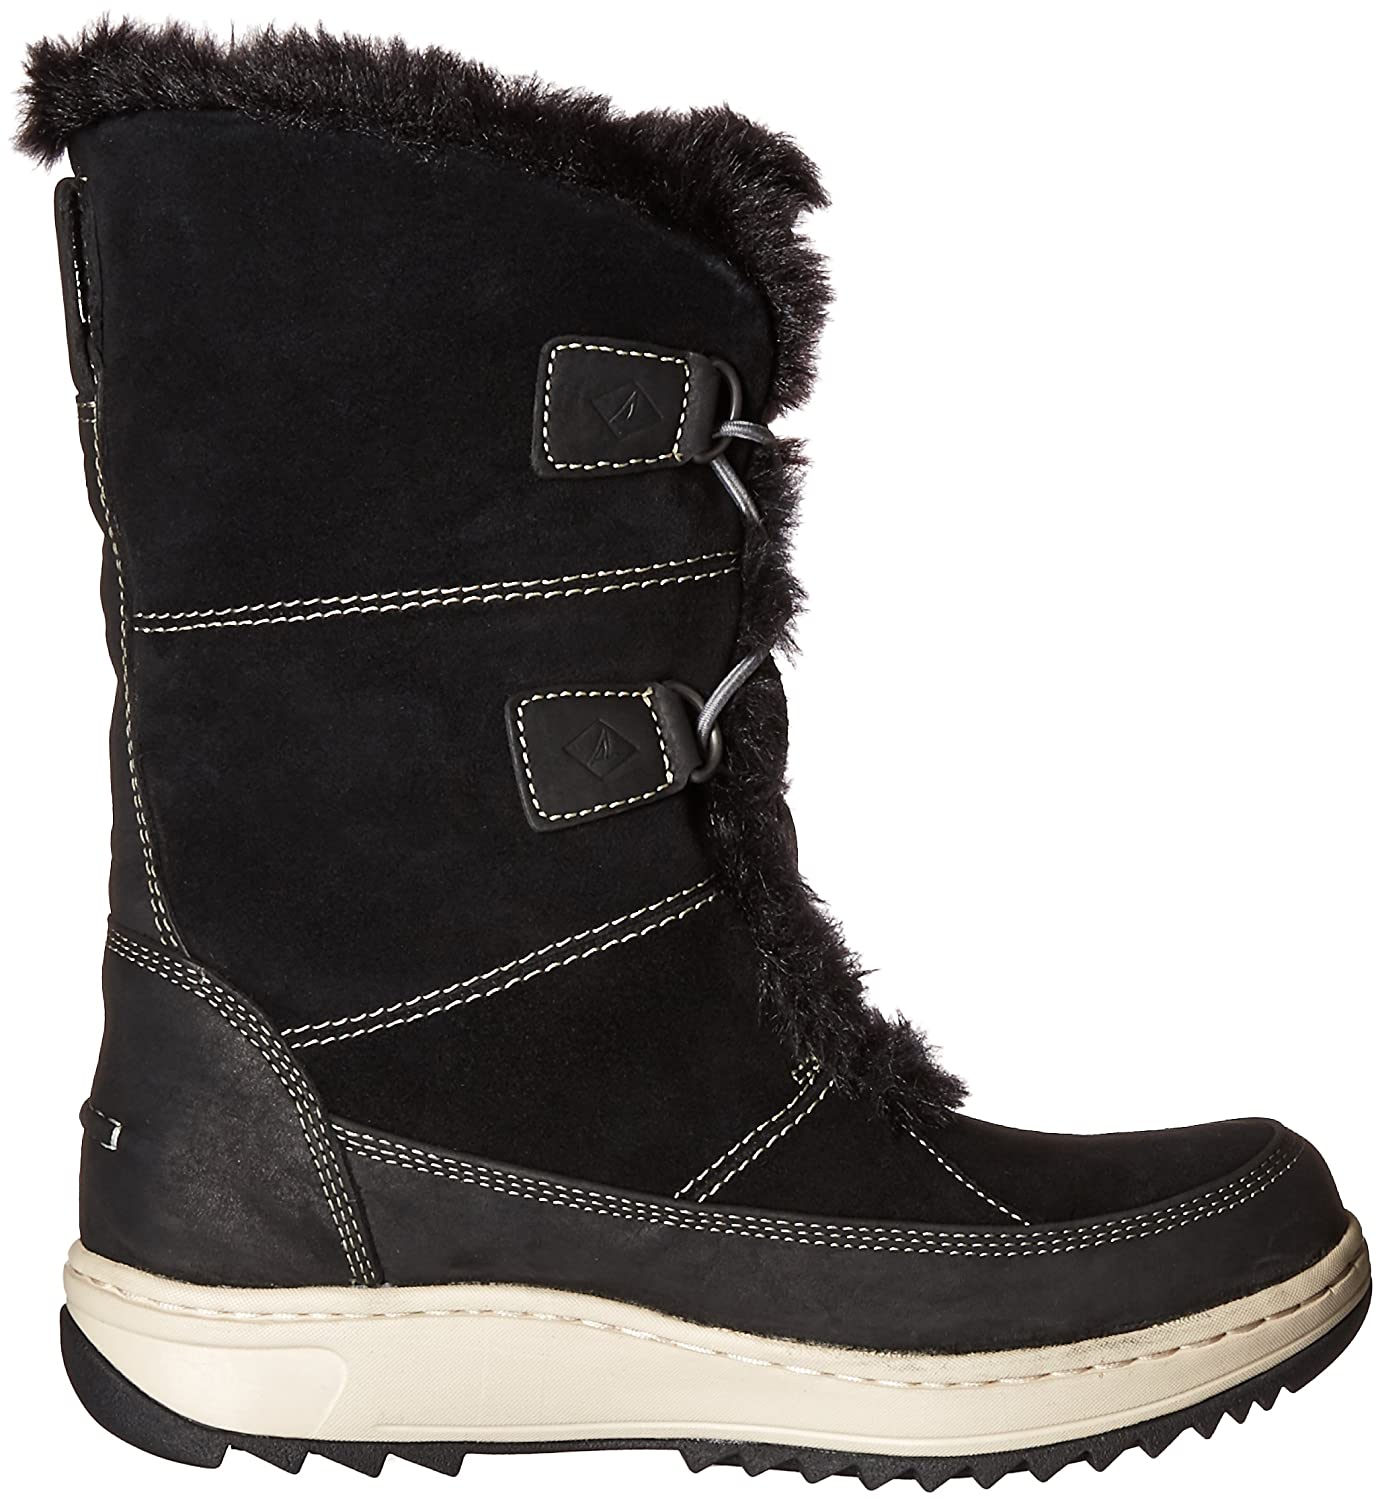 Sperry Womens Powder Valley Snow Boot